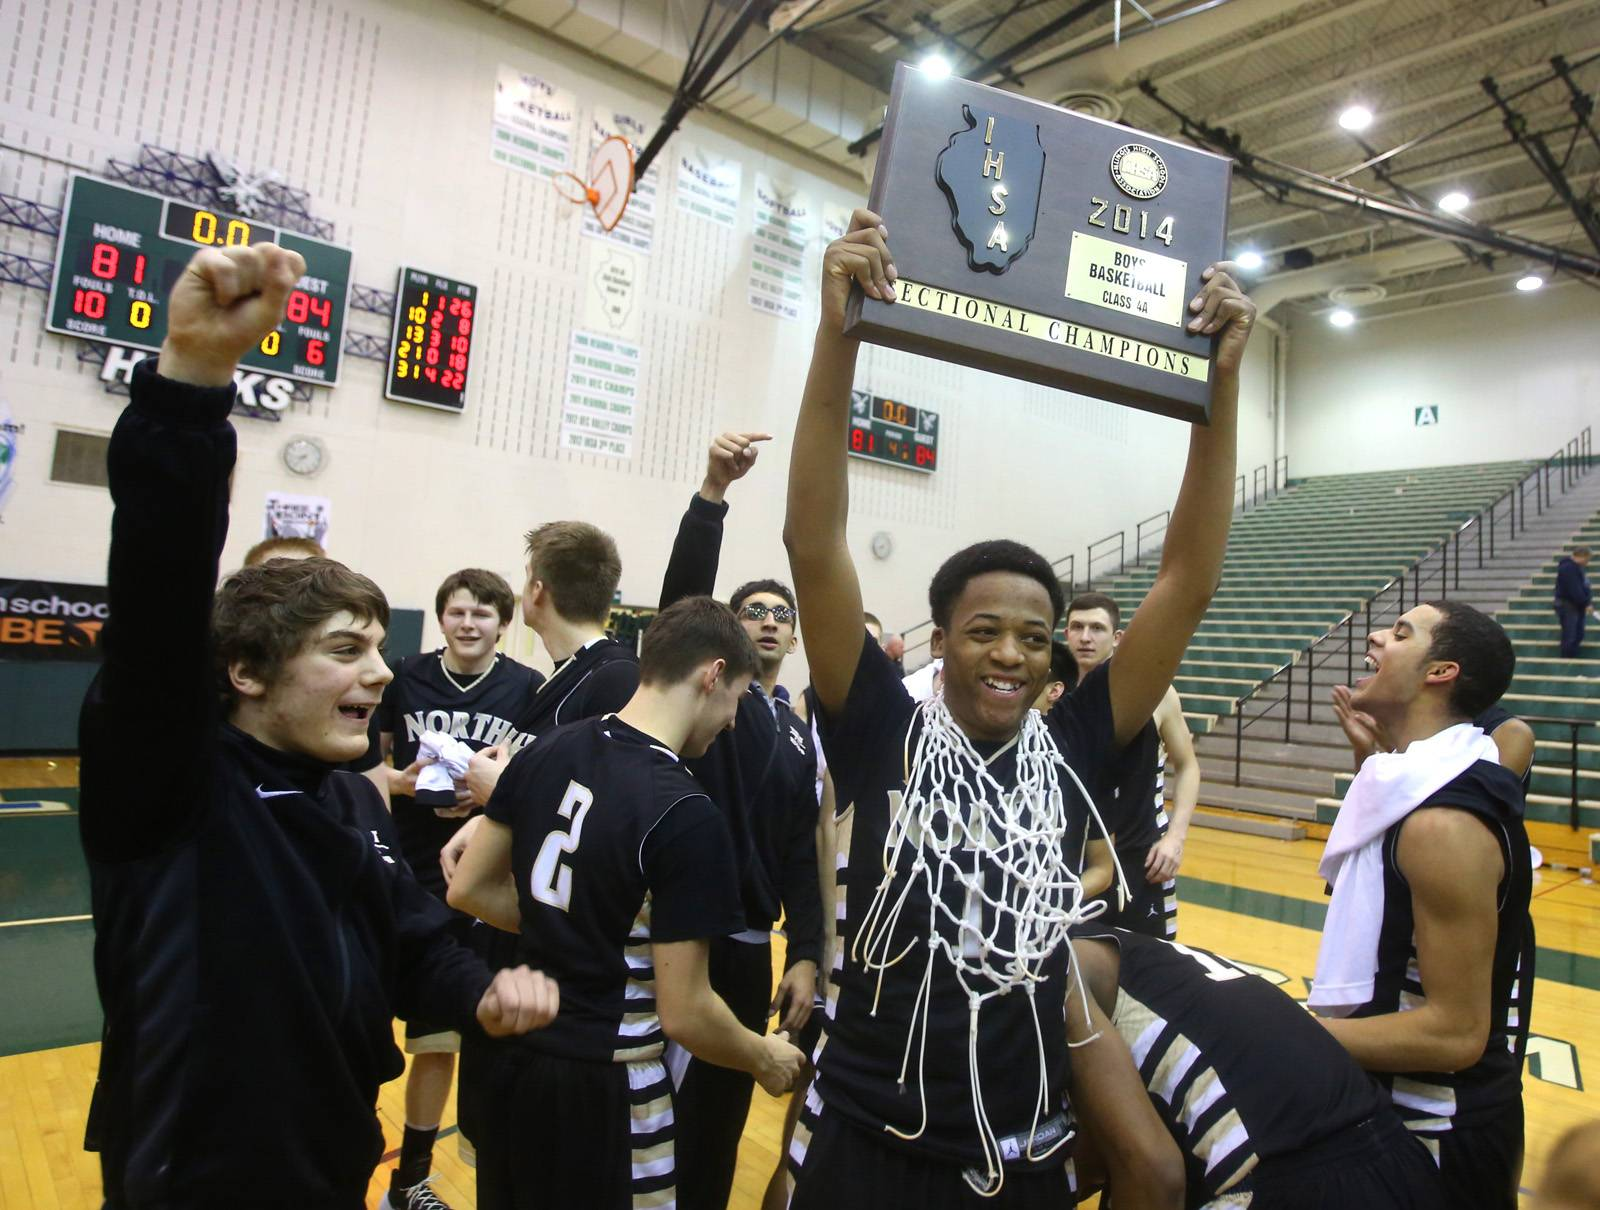 Glenbard North's Jeremiah Fleming hoists the Bartlett boys basketball sectional championship plaque.